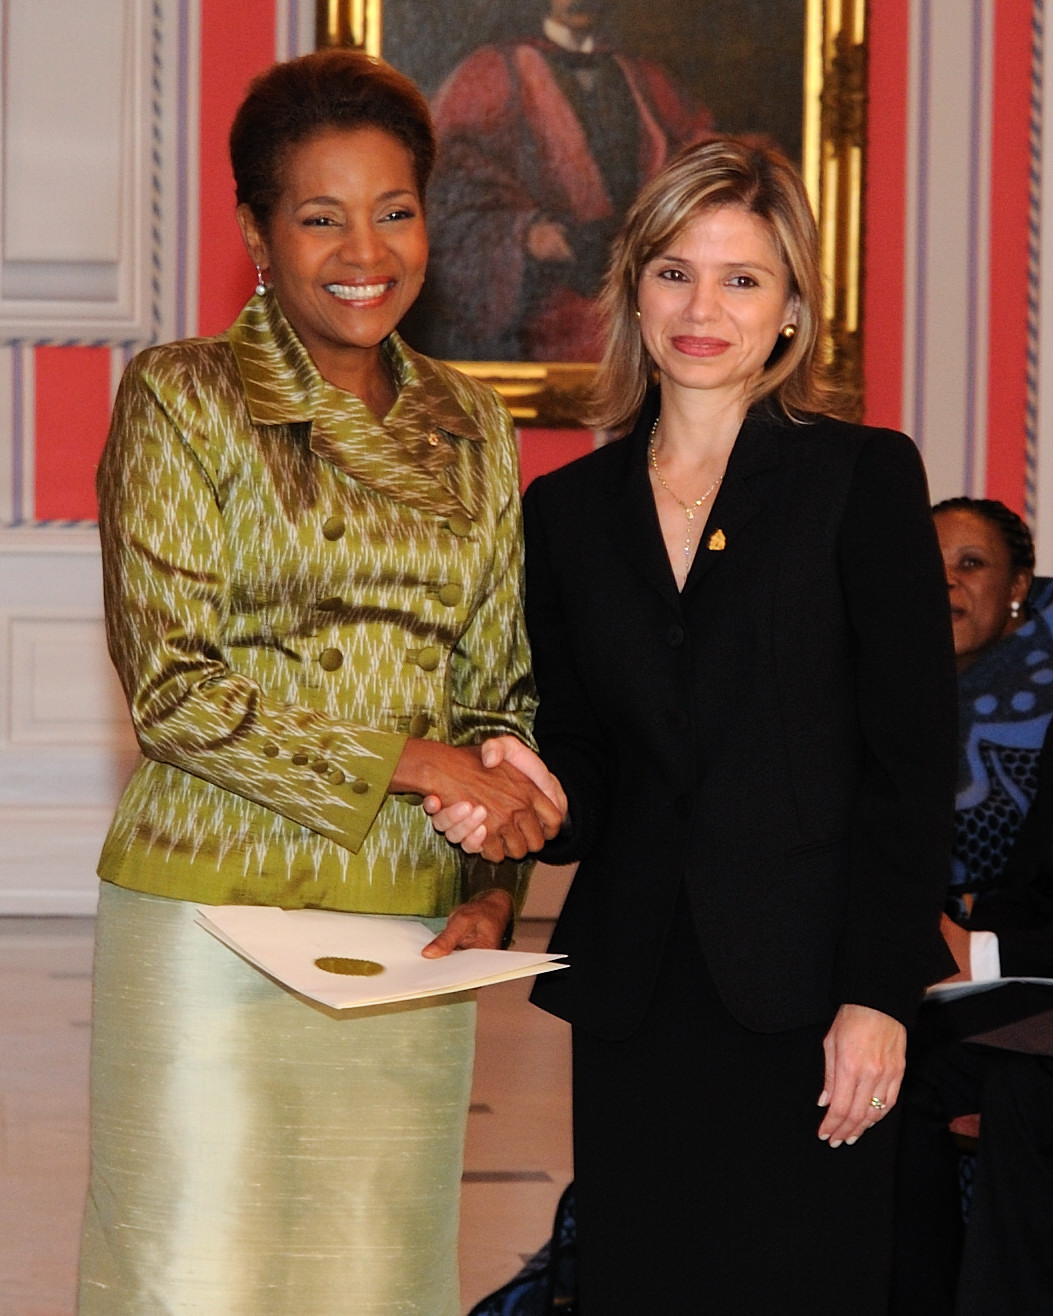 Her Excellency the Right Honourable Michaëlle Jean, Governor General of Canada, received the credentials of Her Excellency Sofia Lastenia Cerrato Rodriguez, Ambassador-designate of the Republic of Honduras.